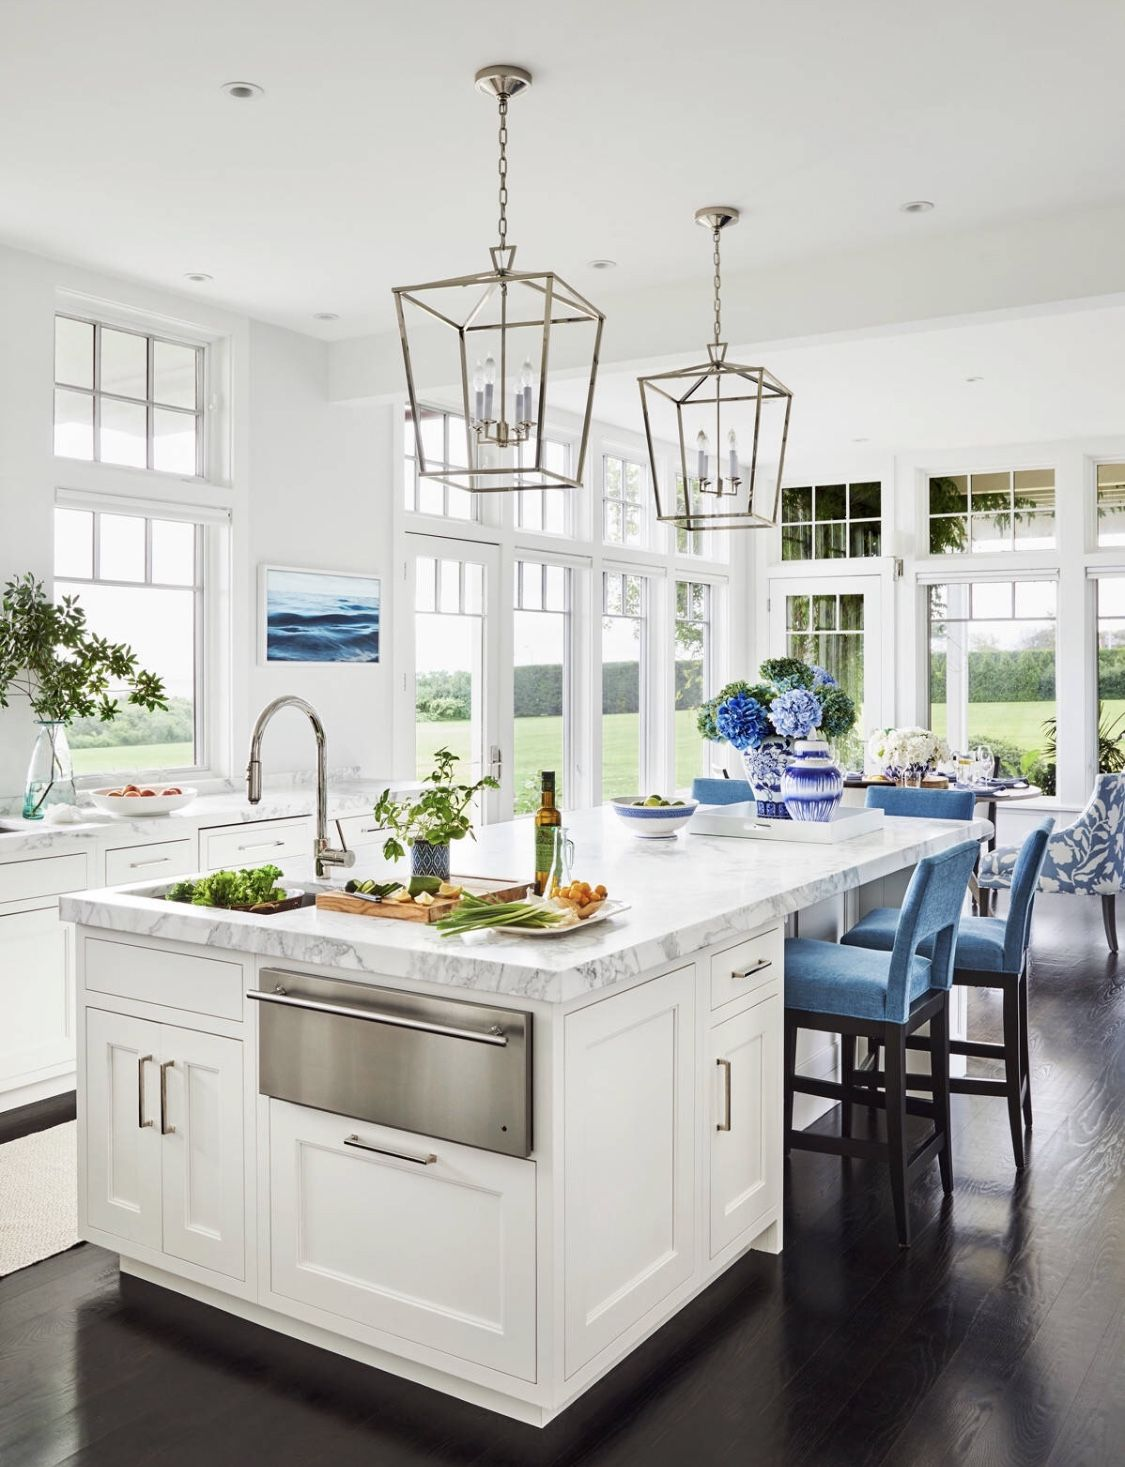 How Not To Design Your Kitchen With Images Design Your